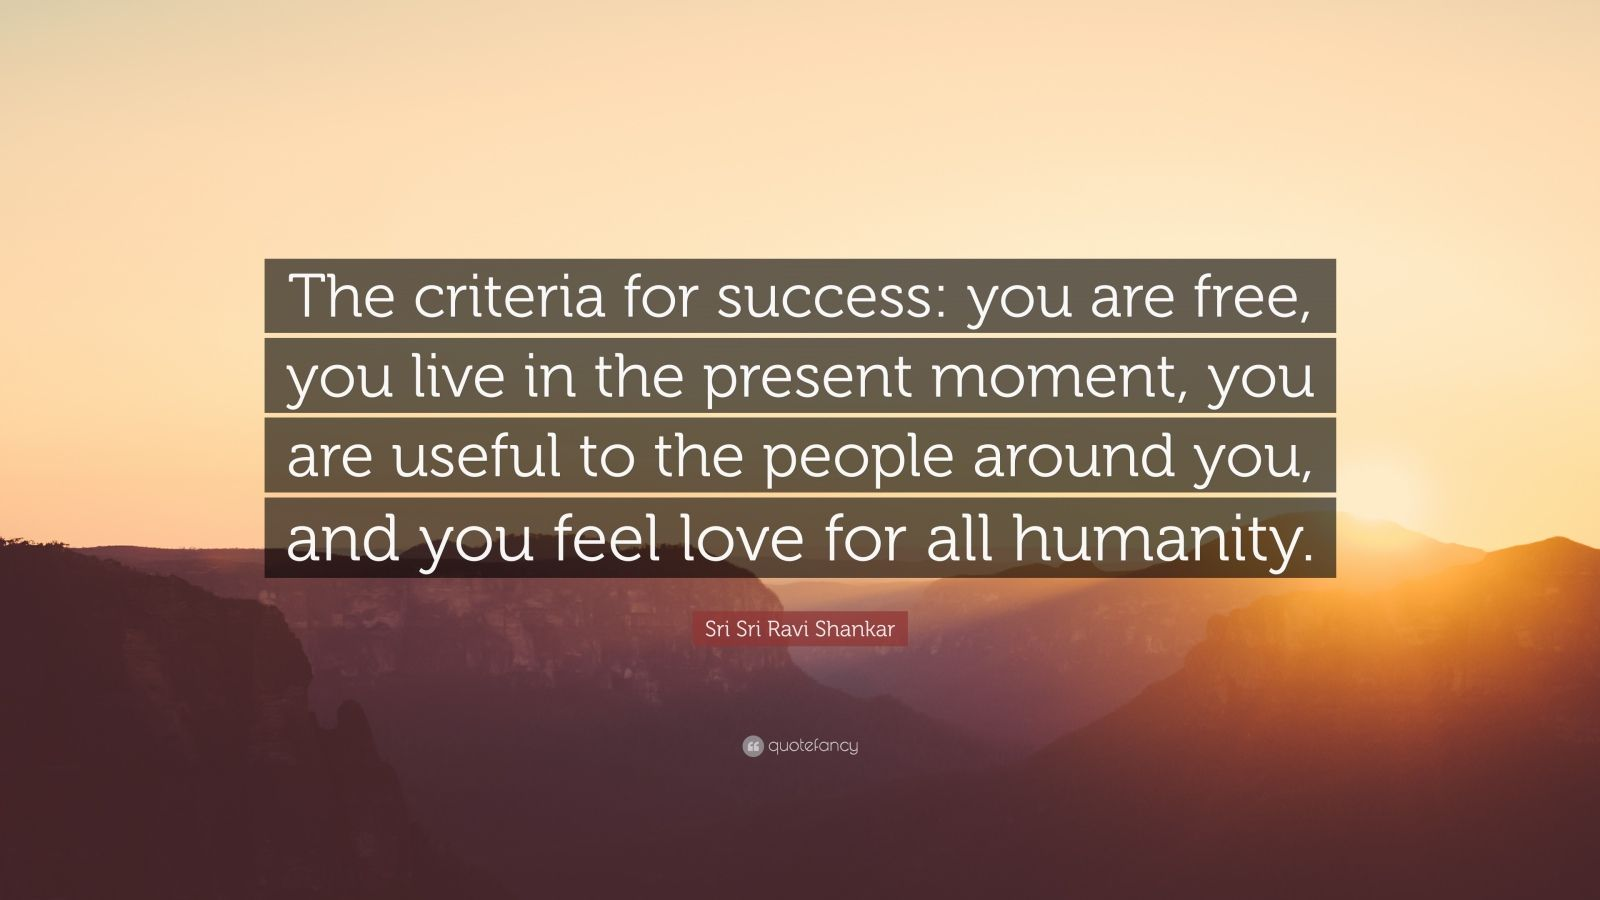 """Sri Sri Ravi Shankar Quote: """"The criteria for success: you are free, you live in the present moment, you are useful to the people around you, and you feel love for all humanity."""""""